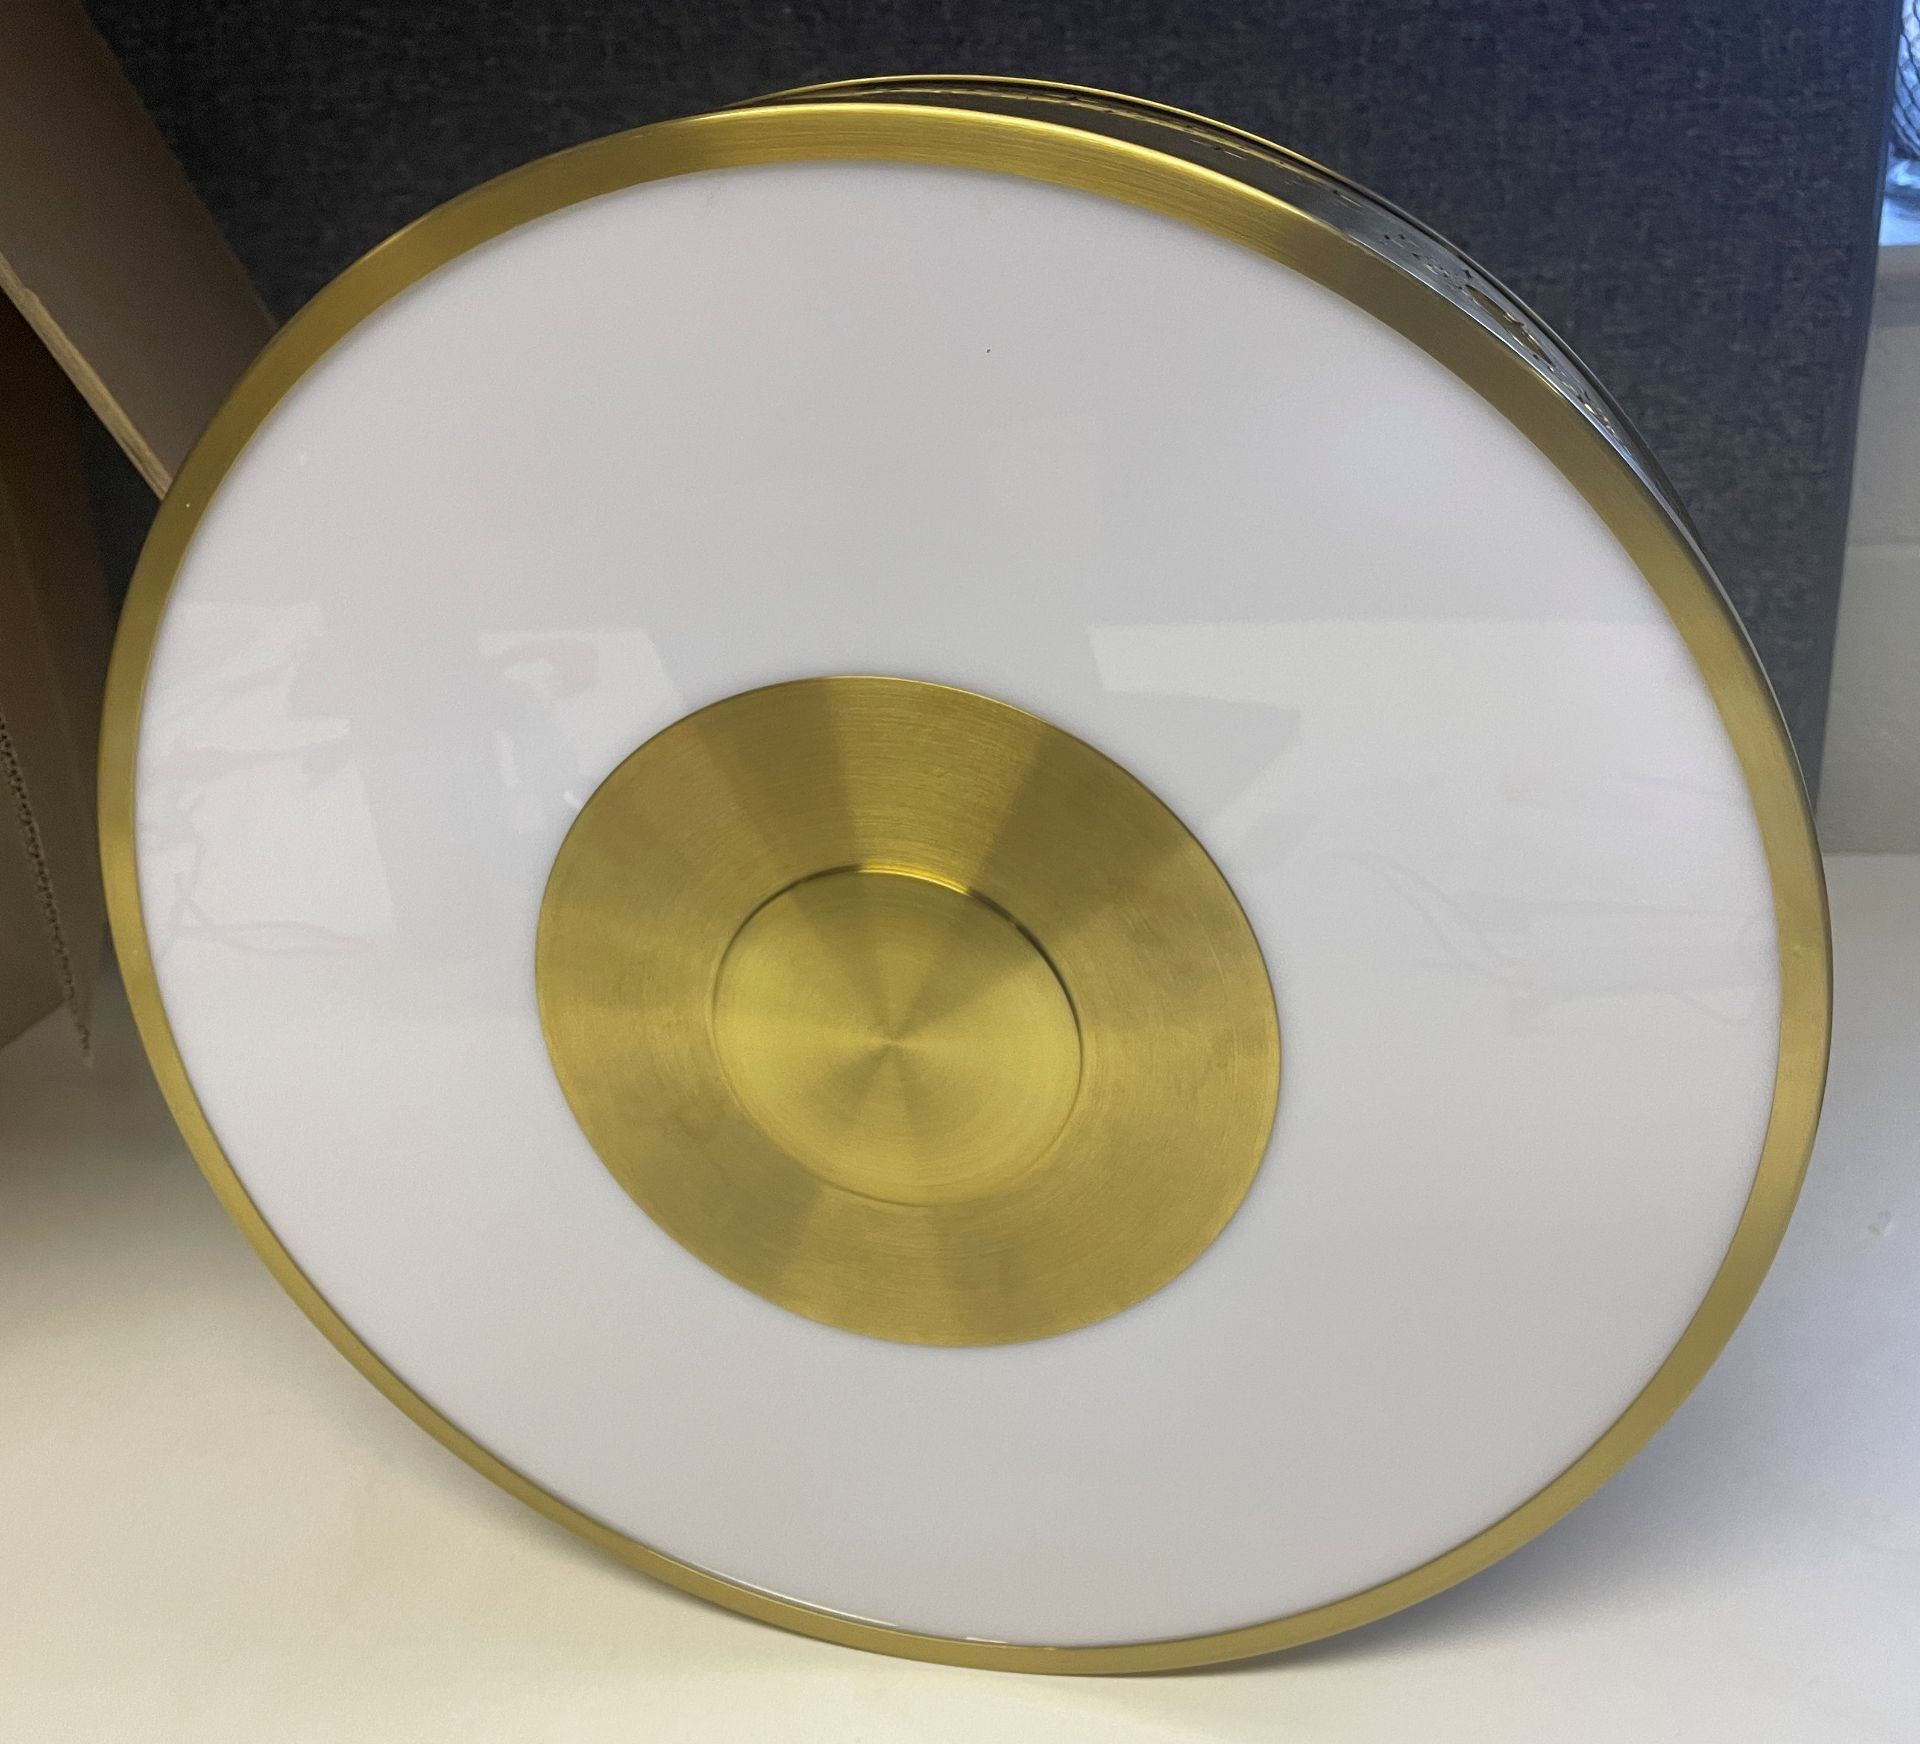 1 x Chelsom 'Disney' New Build Brushed Brass Ceiling Arcade Pendent Light Fitting - Sample we under - Image 12 of 14